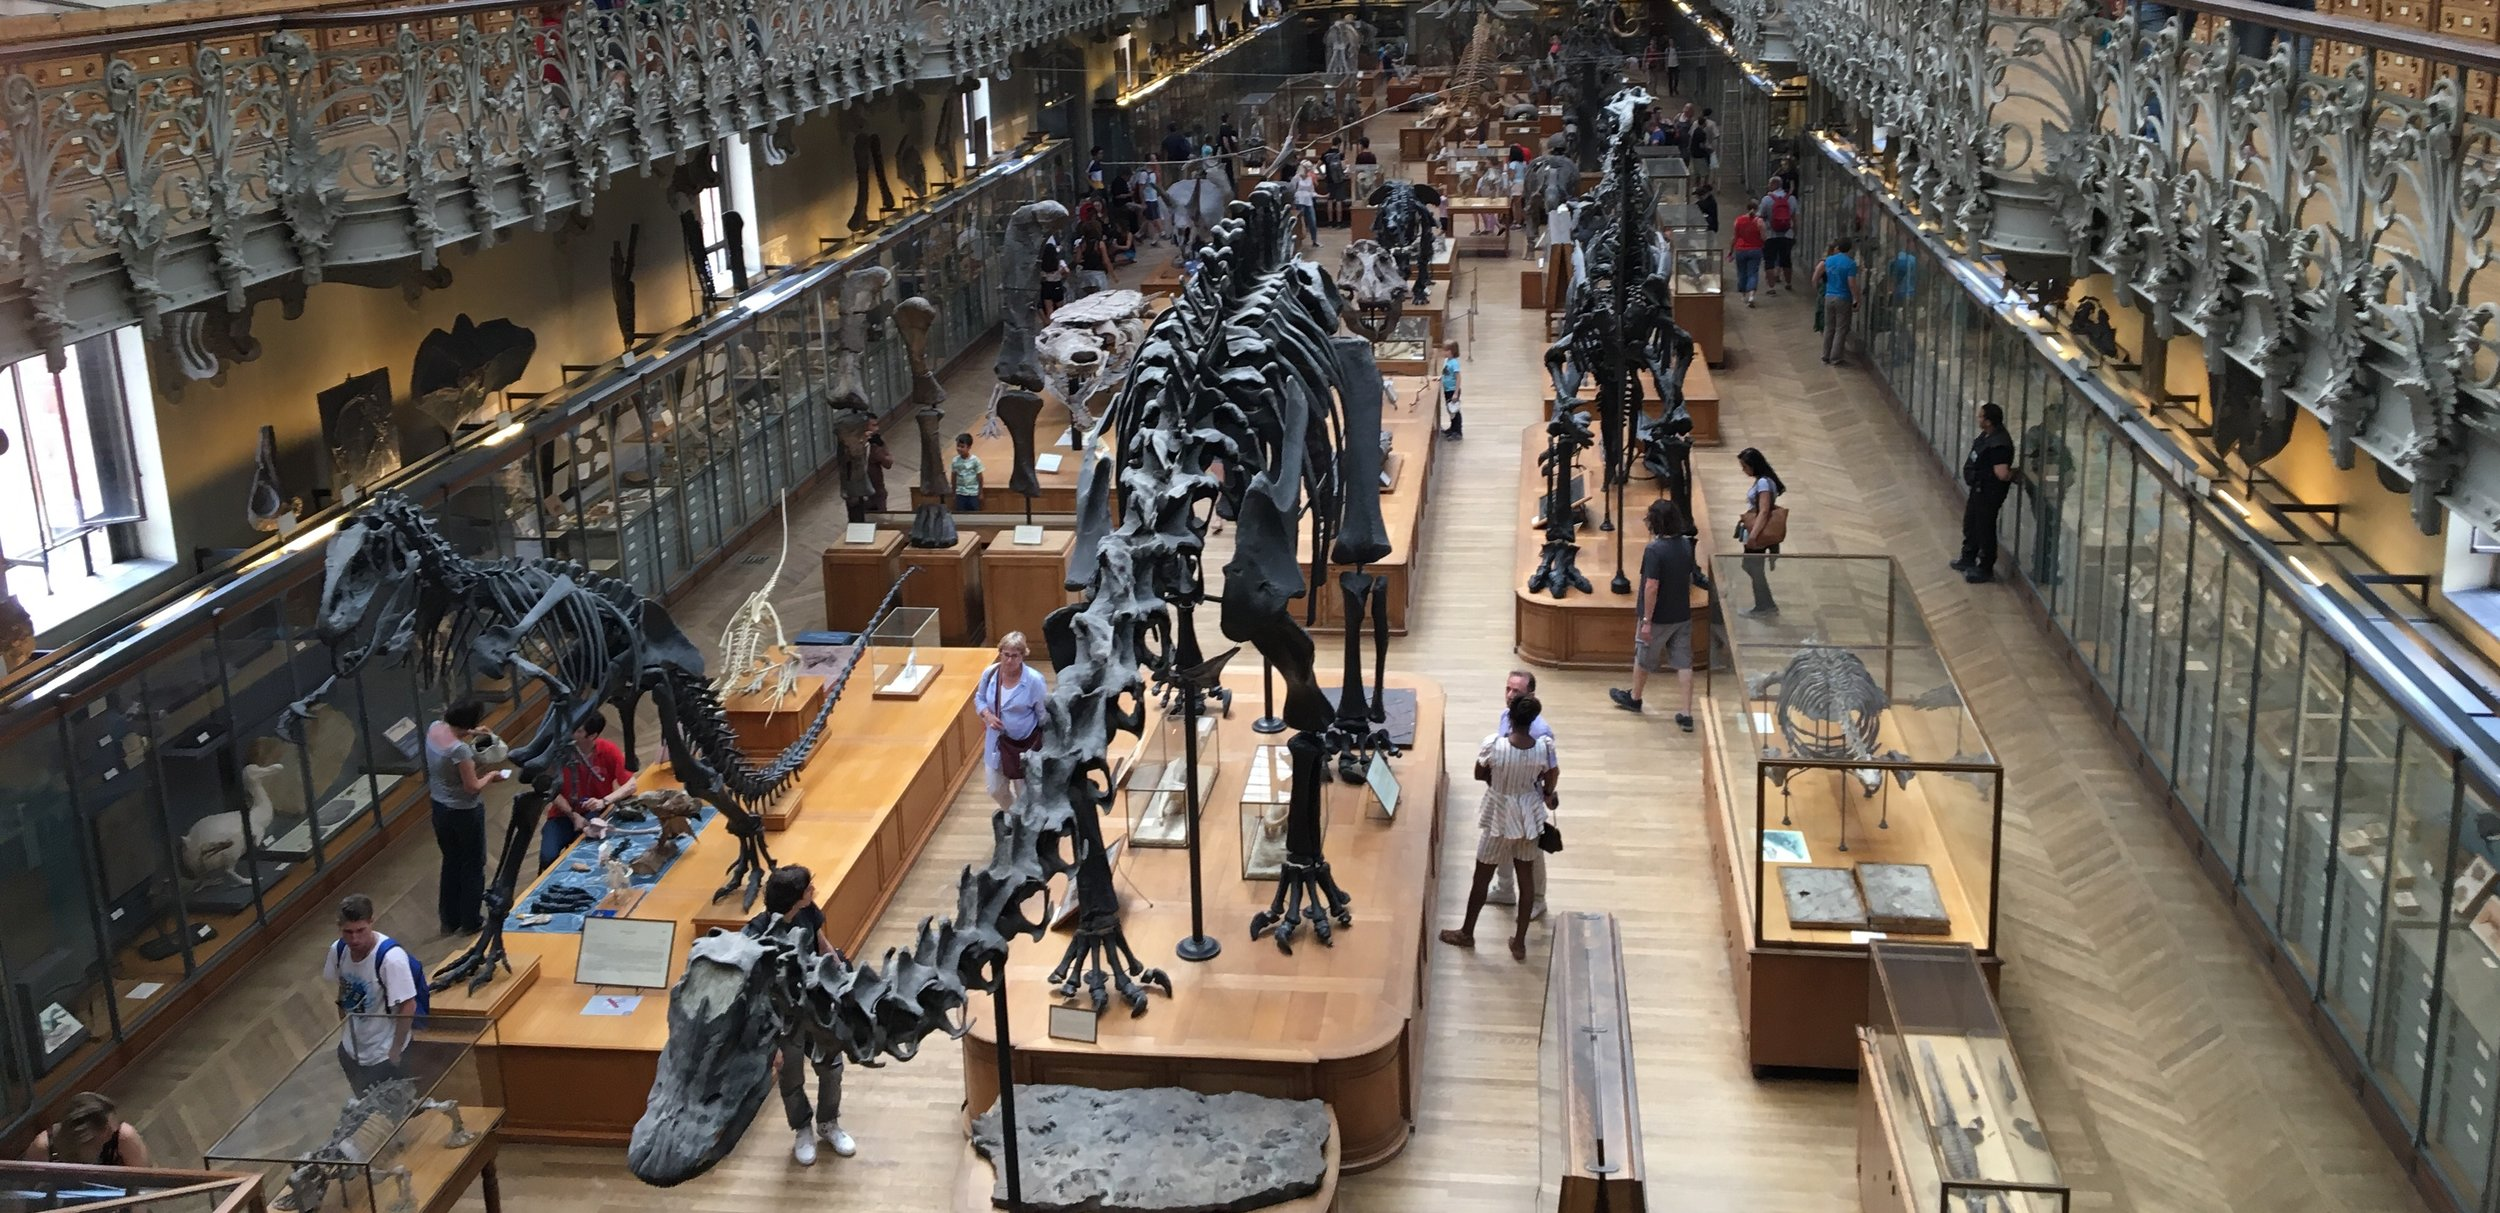 Interior of the Galerie de Paleontologie et d'Anatomie Comparee (Paleontology and Comparative Anatomy Gallery, Paris); photo by Bruce S. Lieberman.